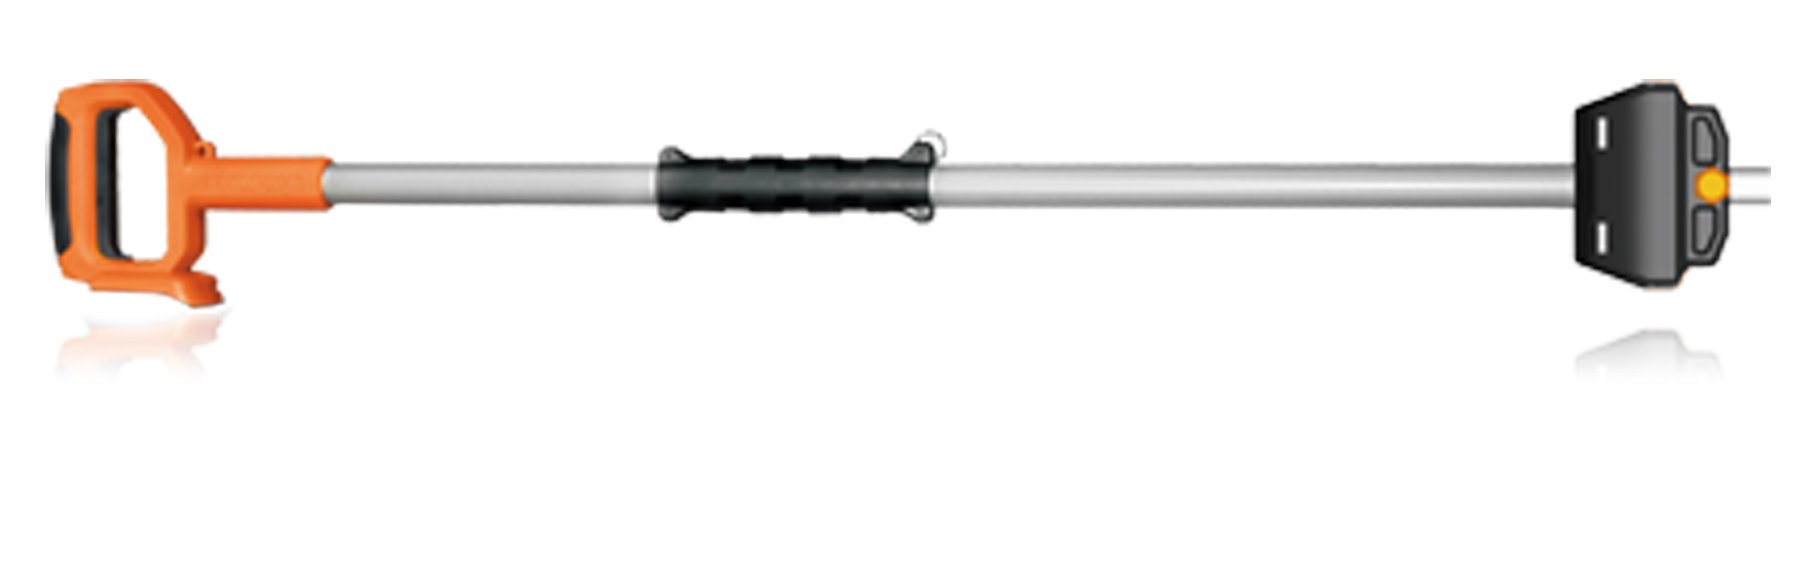 Worx WA0169 5' Extension Pole for WG320 and WG321 JawSaw Chainsaws